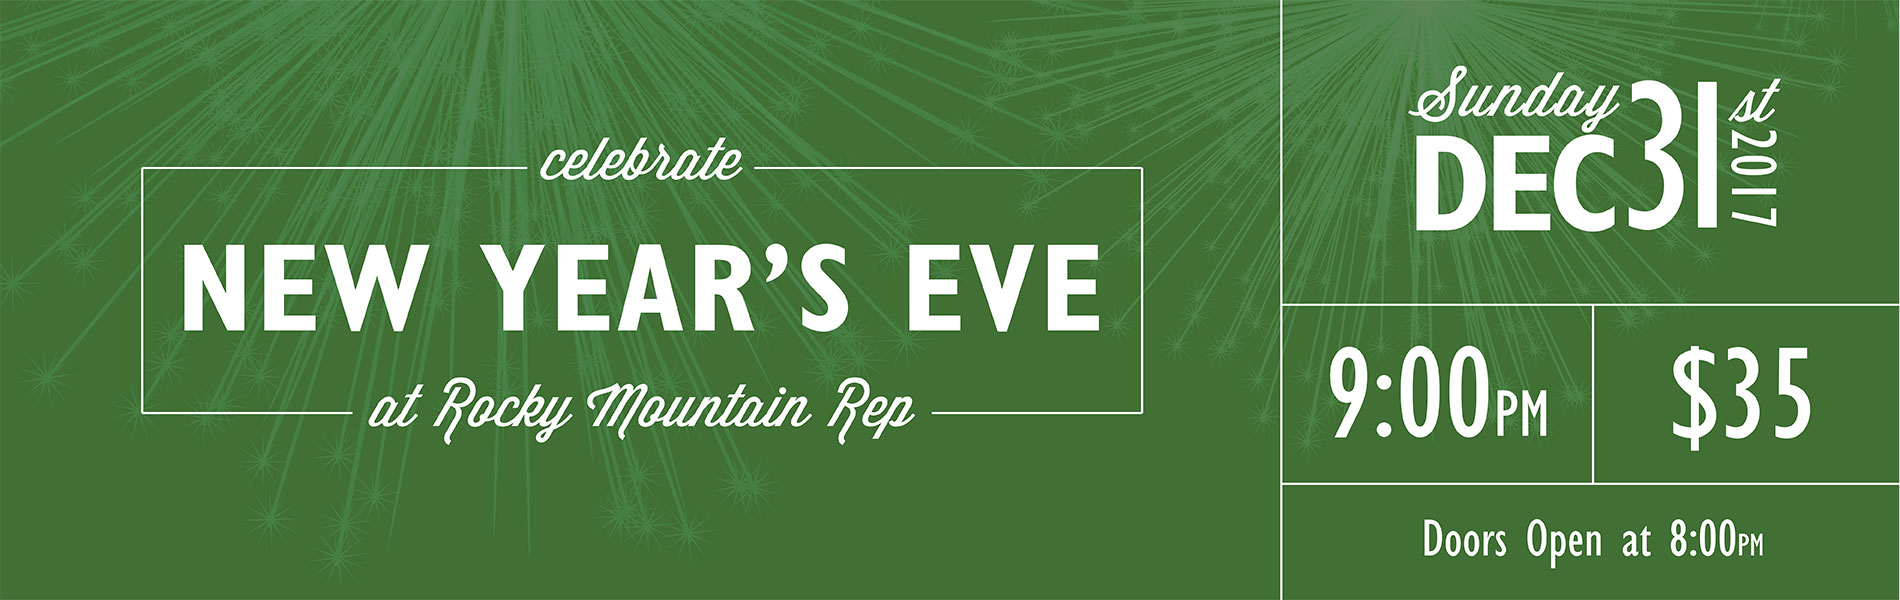 New Year's Eve Show 2017